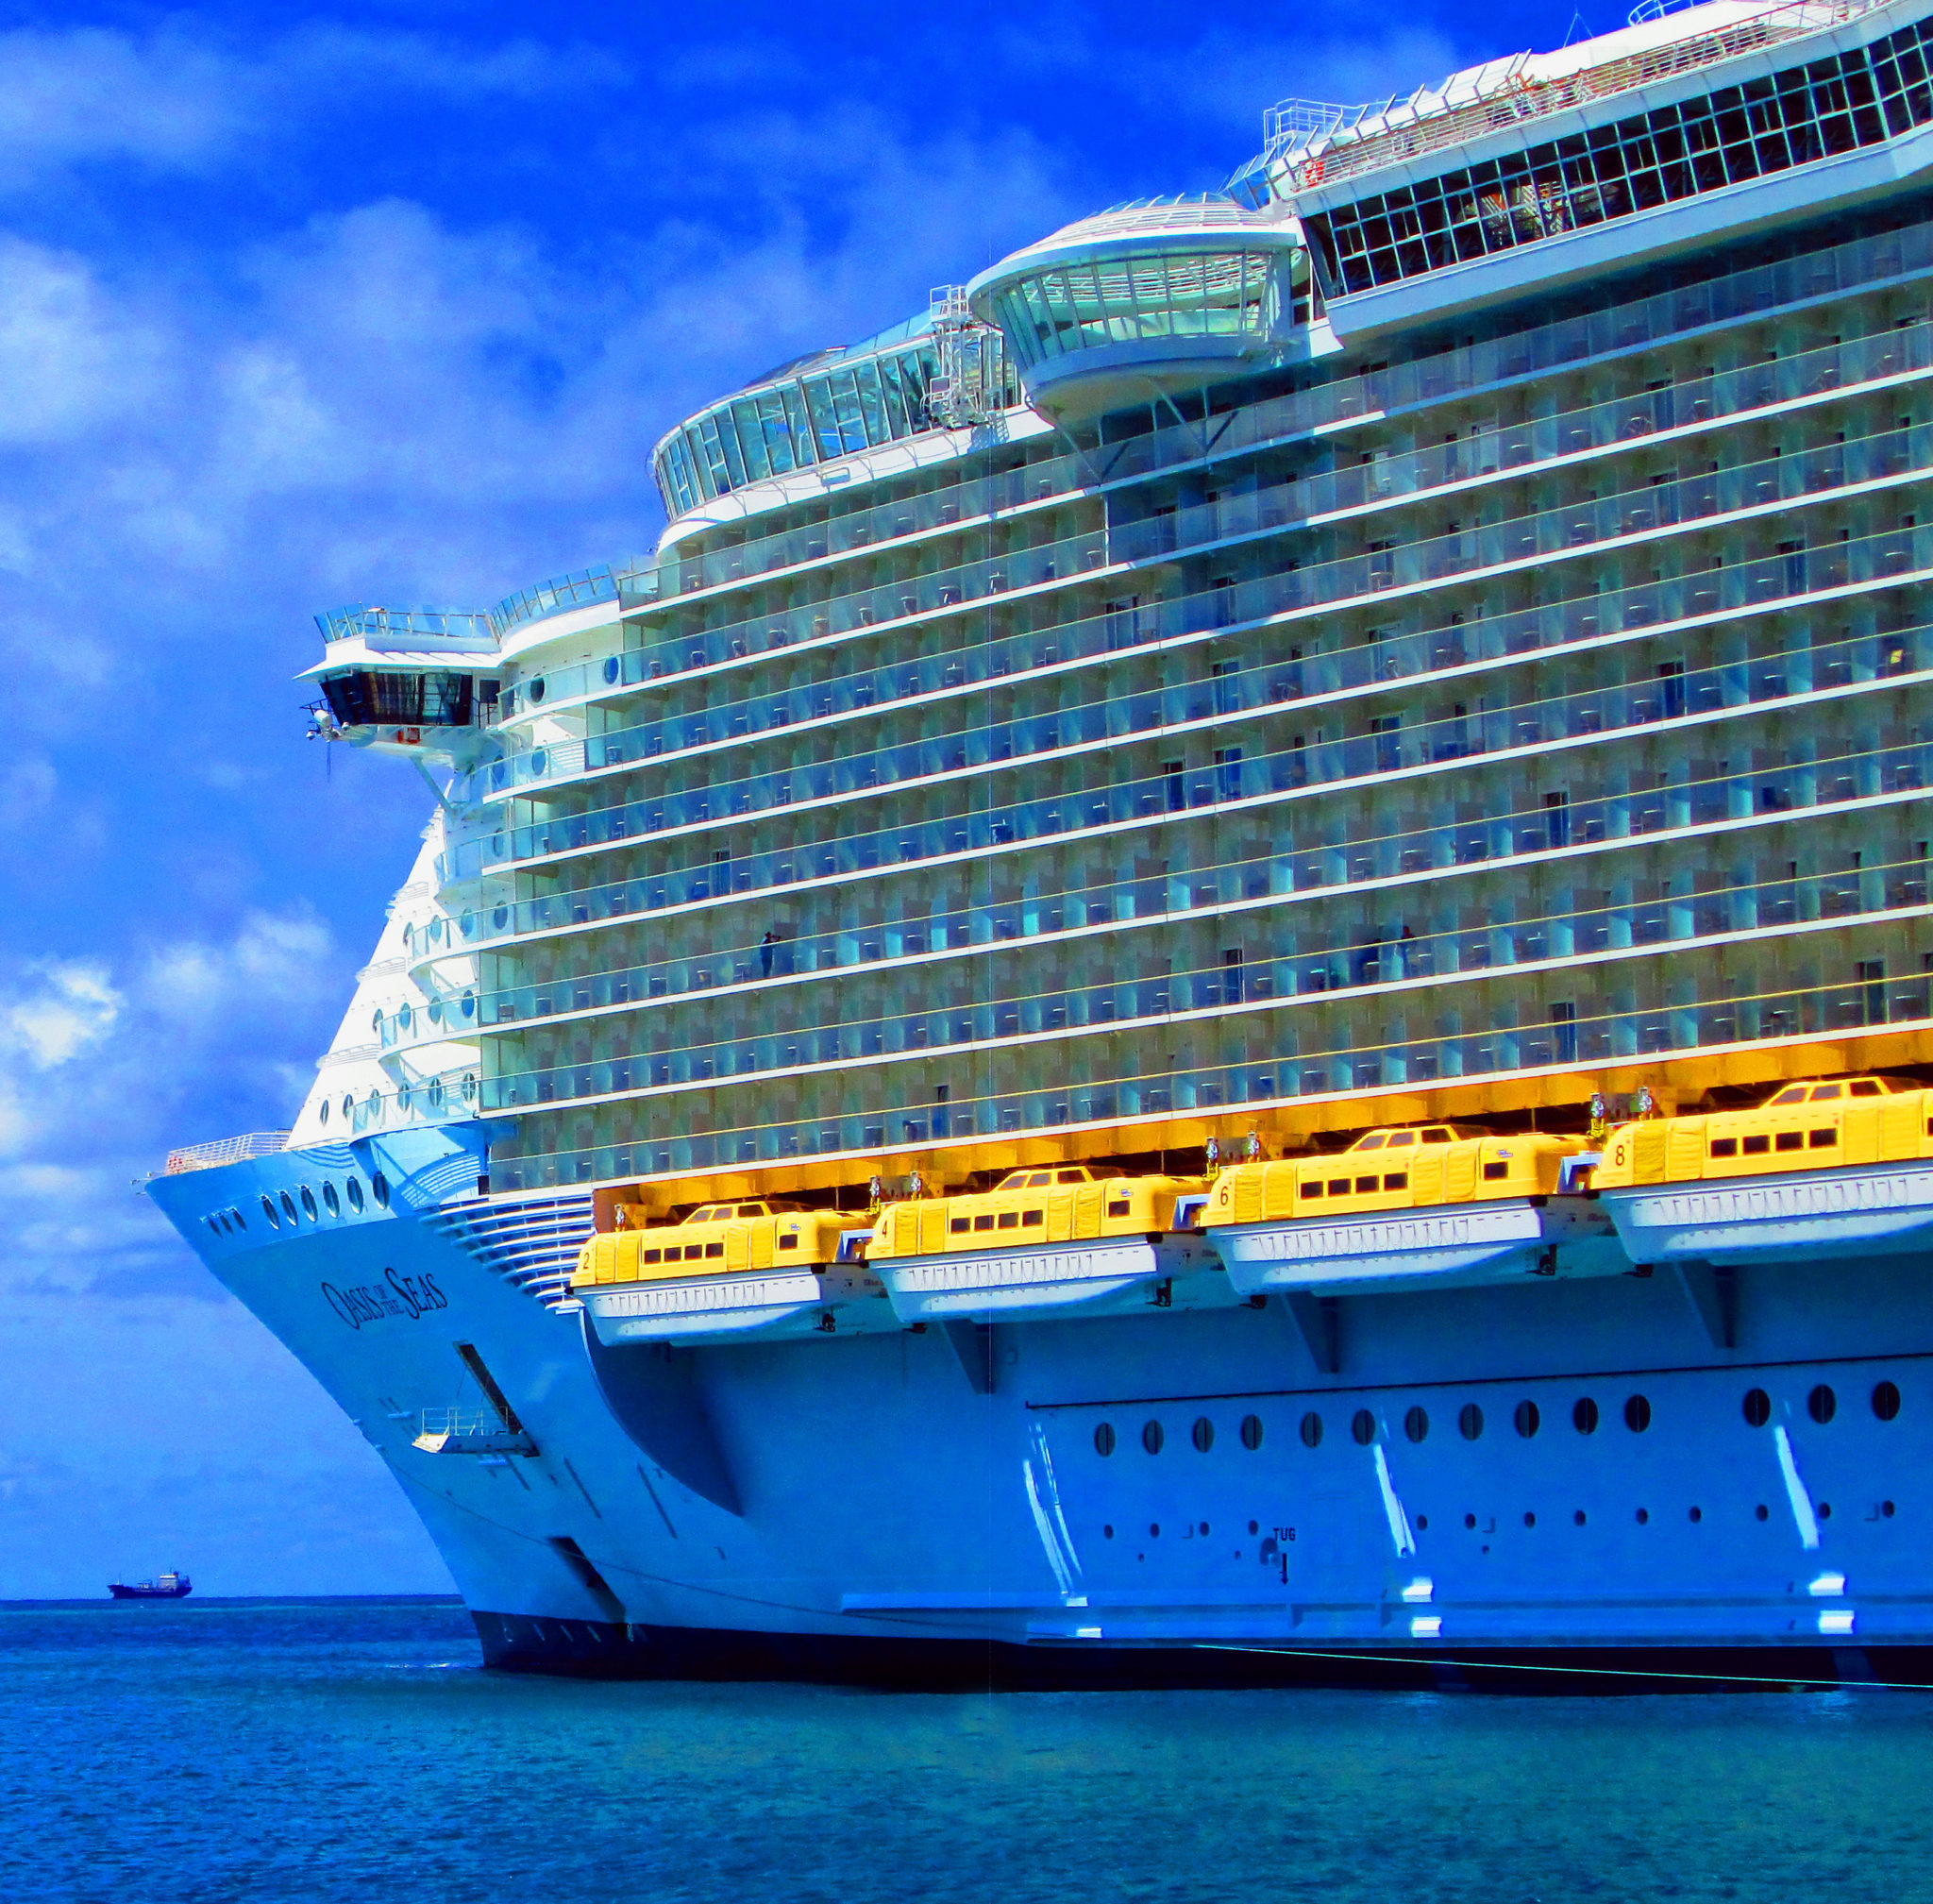 royal caribbean becomes latest cruise line to end balcony